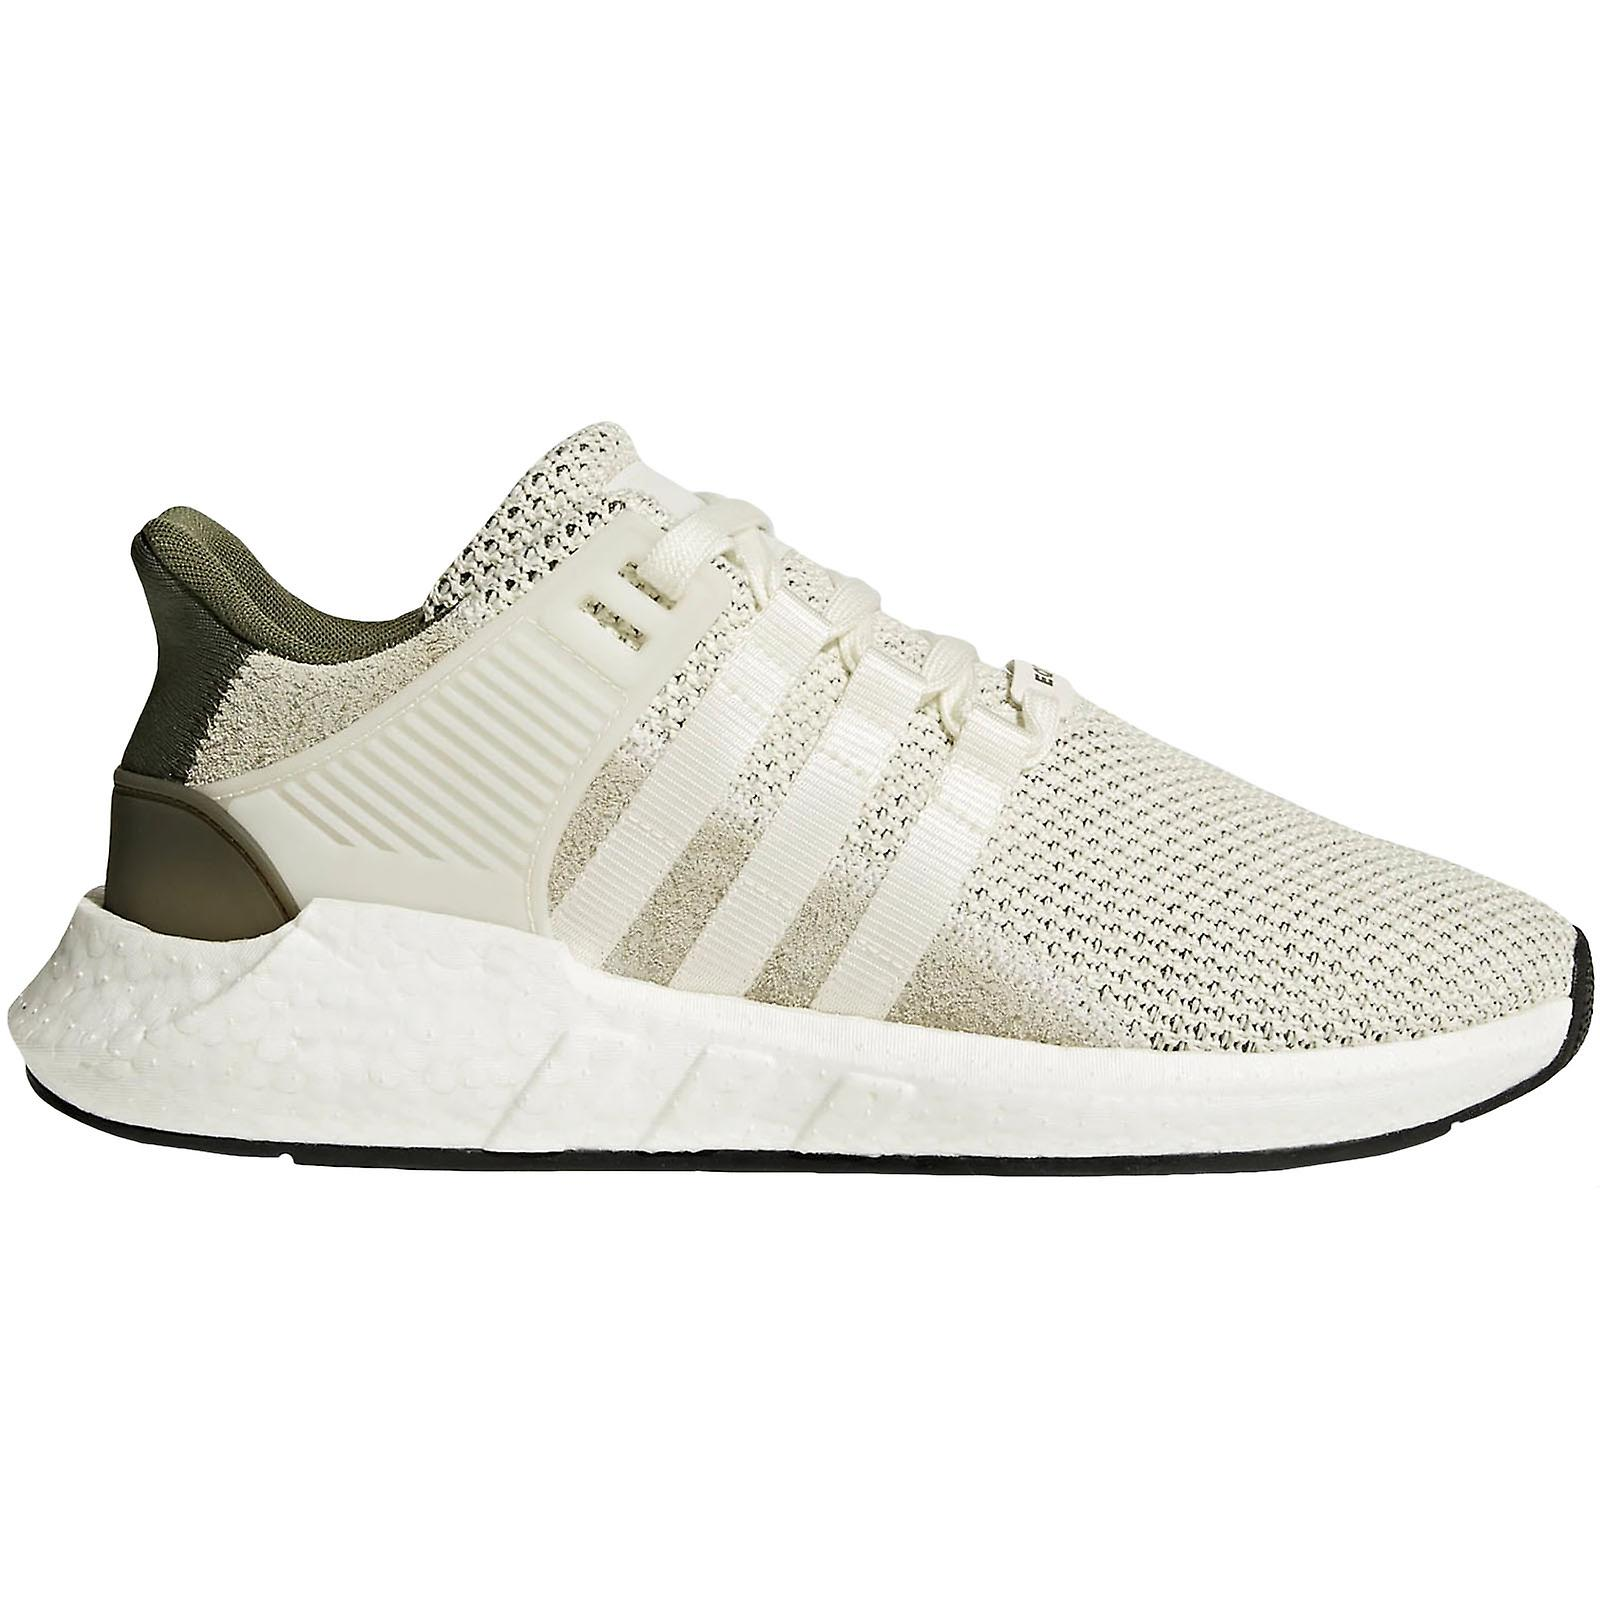 adidas Originals Mens EQT SUPPORT 93/17 Casual Knit Trainers Sneakers Adidas